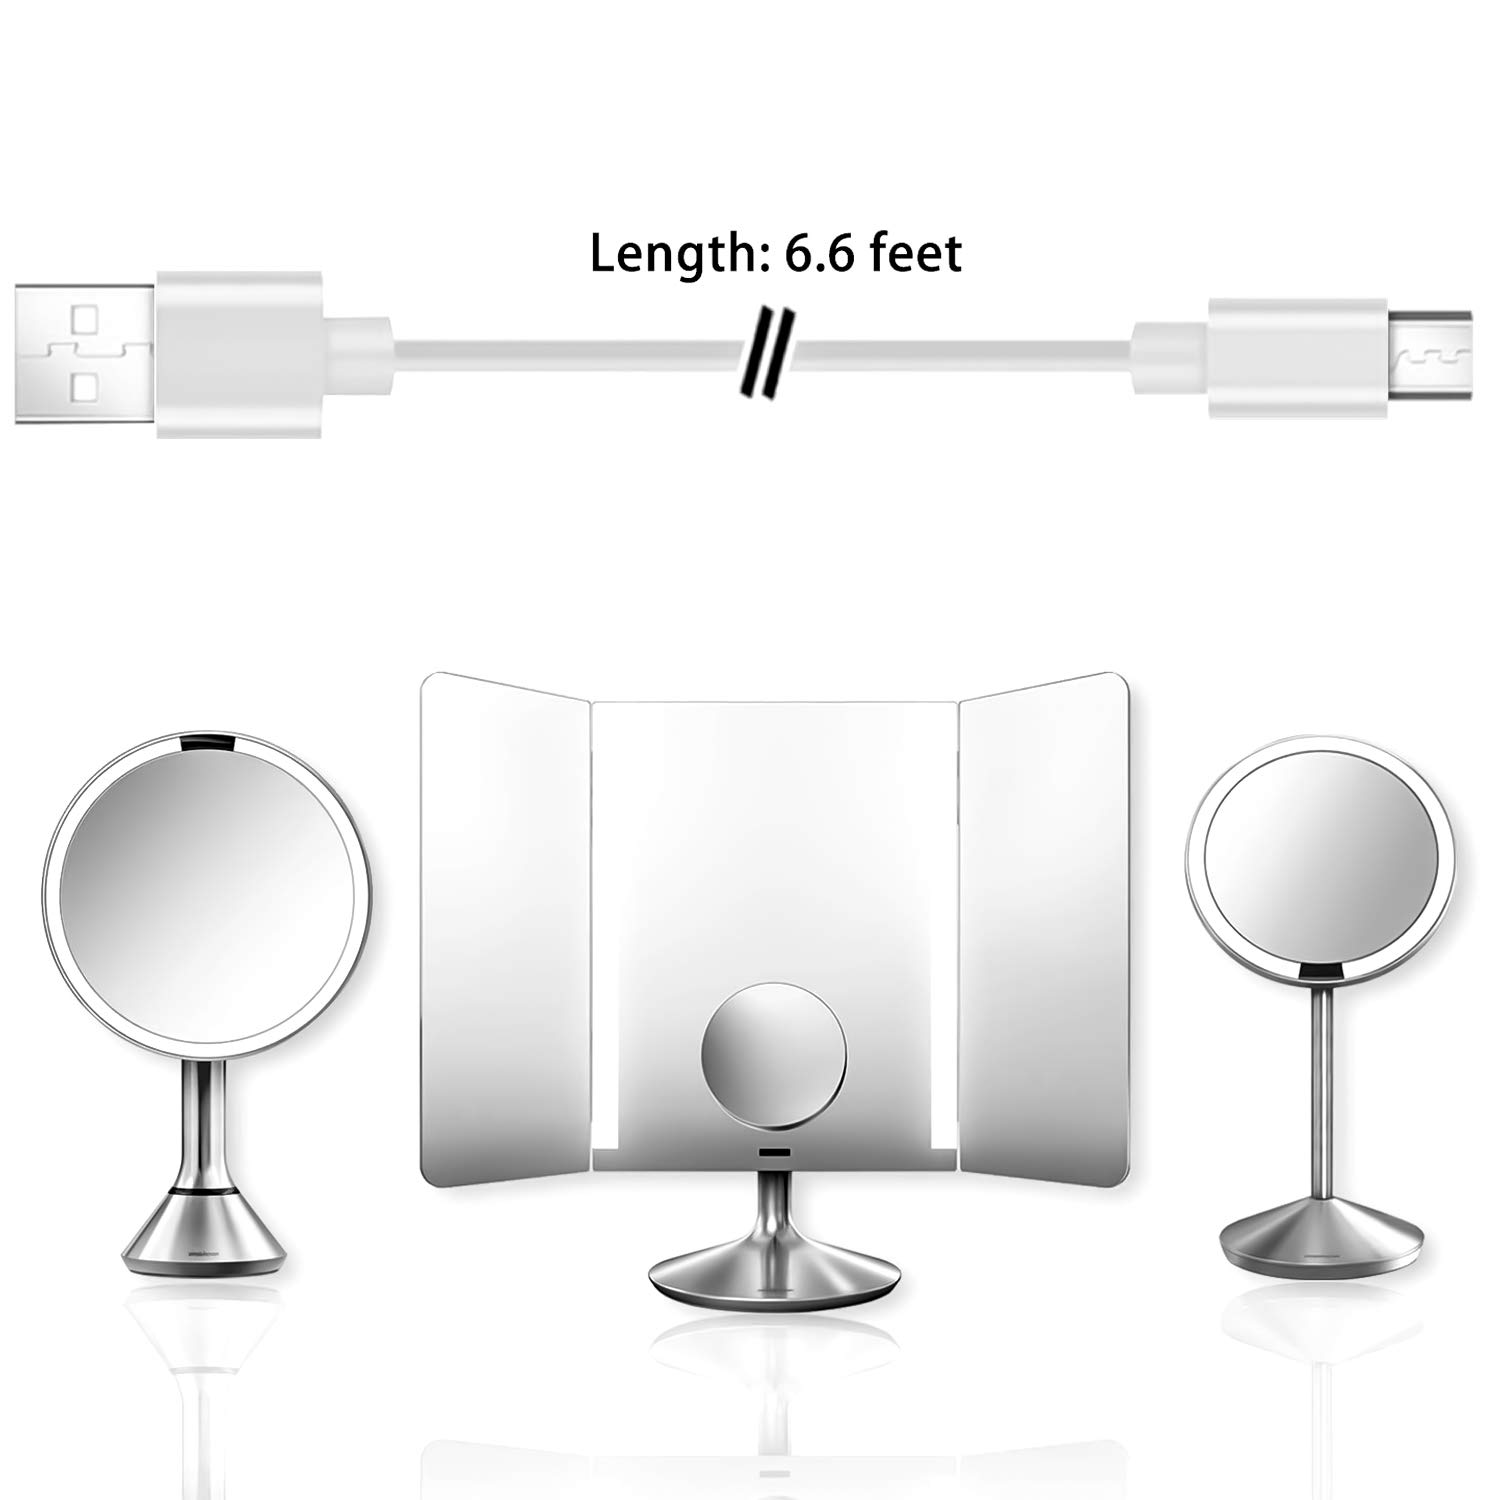 6.6FT High Speed Charger Cable Cord Compatible for Simplehuman 5 inch /& 8inch Sensor Mirror Lighted Makeup Mirror//Simple Human Mirror Micro USB Cable